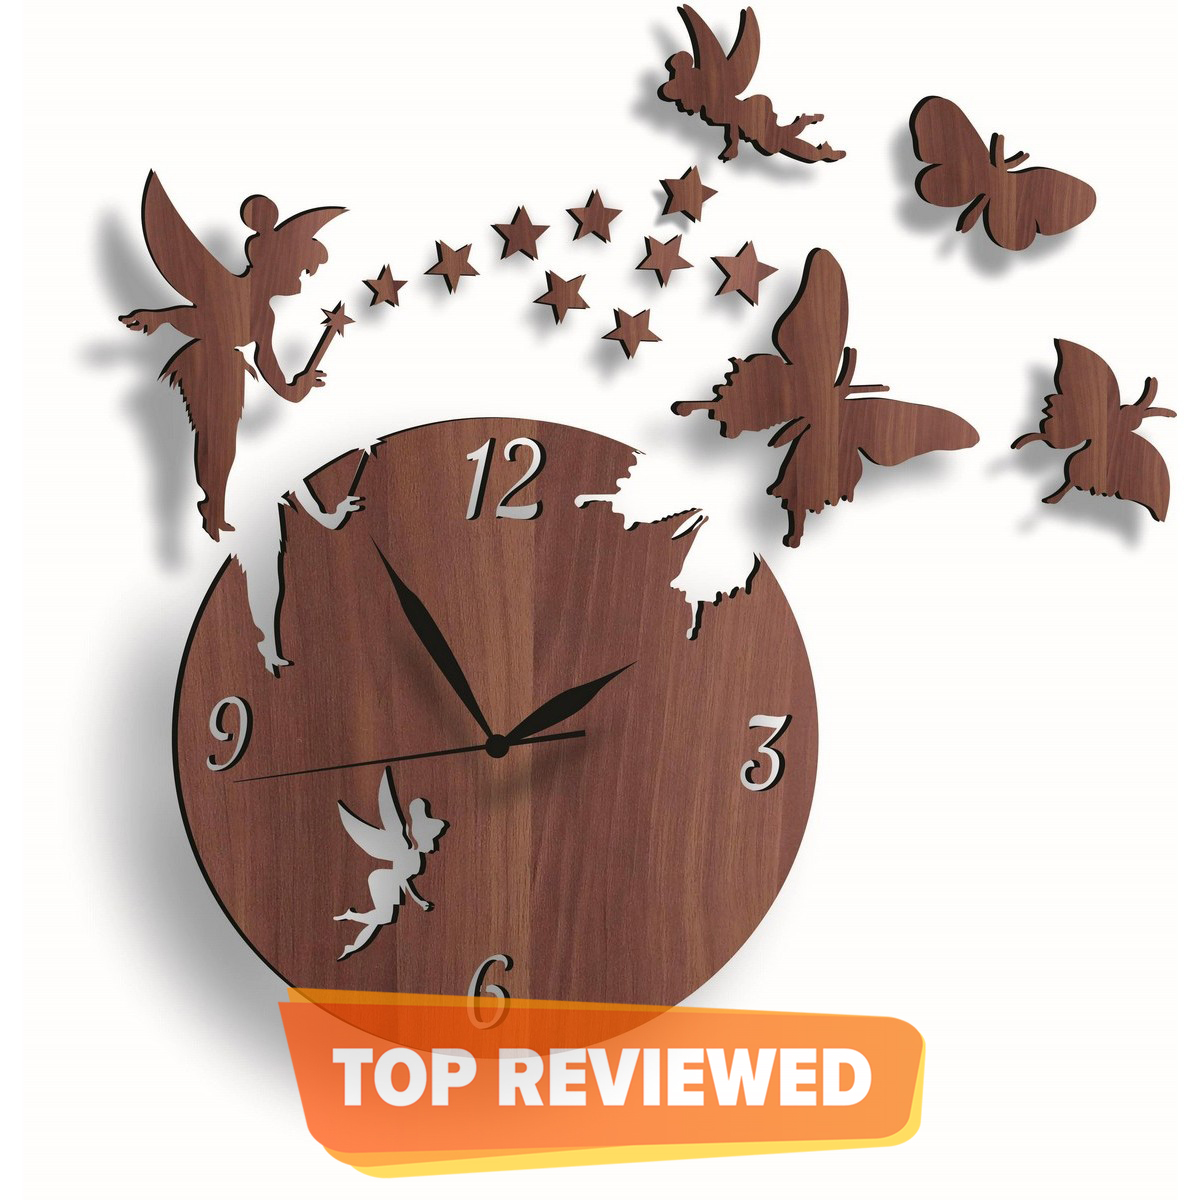 Wooden Wall Clock Fairy Home Decor Watches Good Quality Products, Girls & Kids Favorite Fairy Wooden Wall Clock, 3D Laser Cut Wall Clock 2 Fairy With 9Stars 3Butterflies